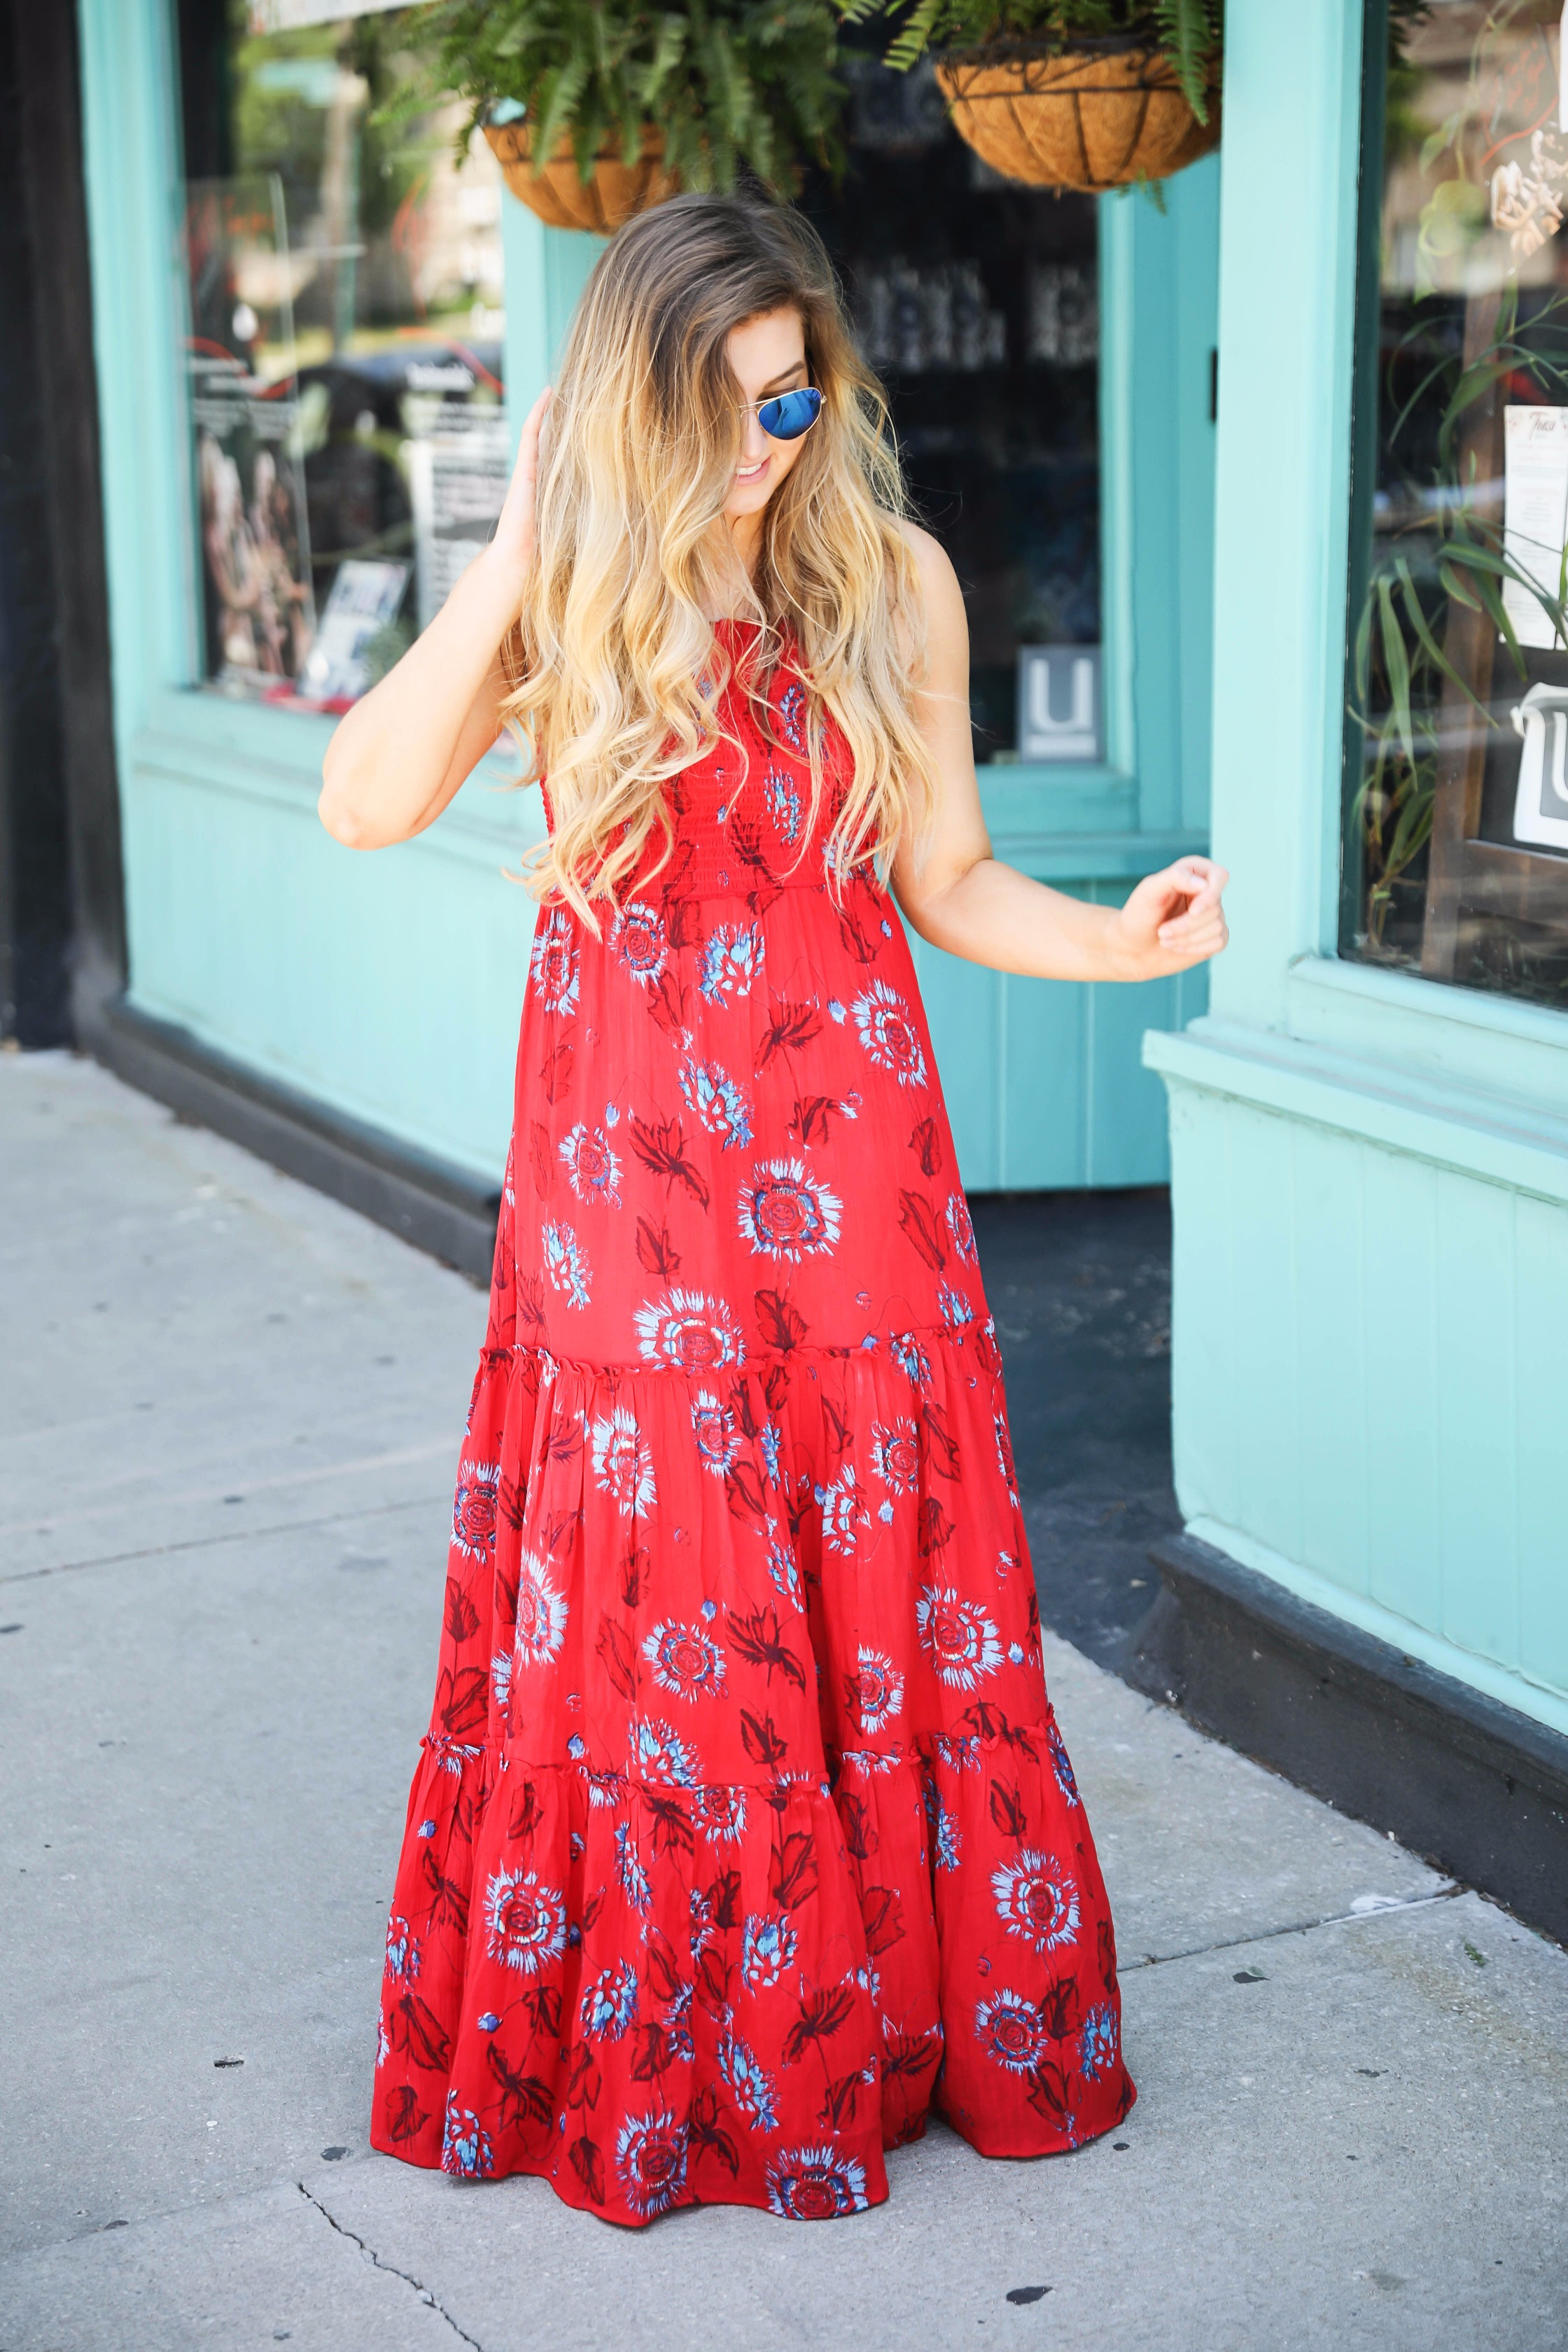 Free people red tie back maxi dress for summer and fourth of July outfit by lauren lindmark on daily dose of charm lauren lindmark